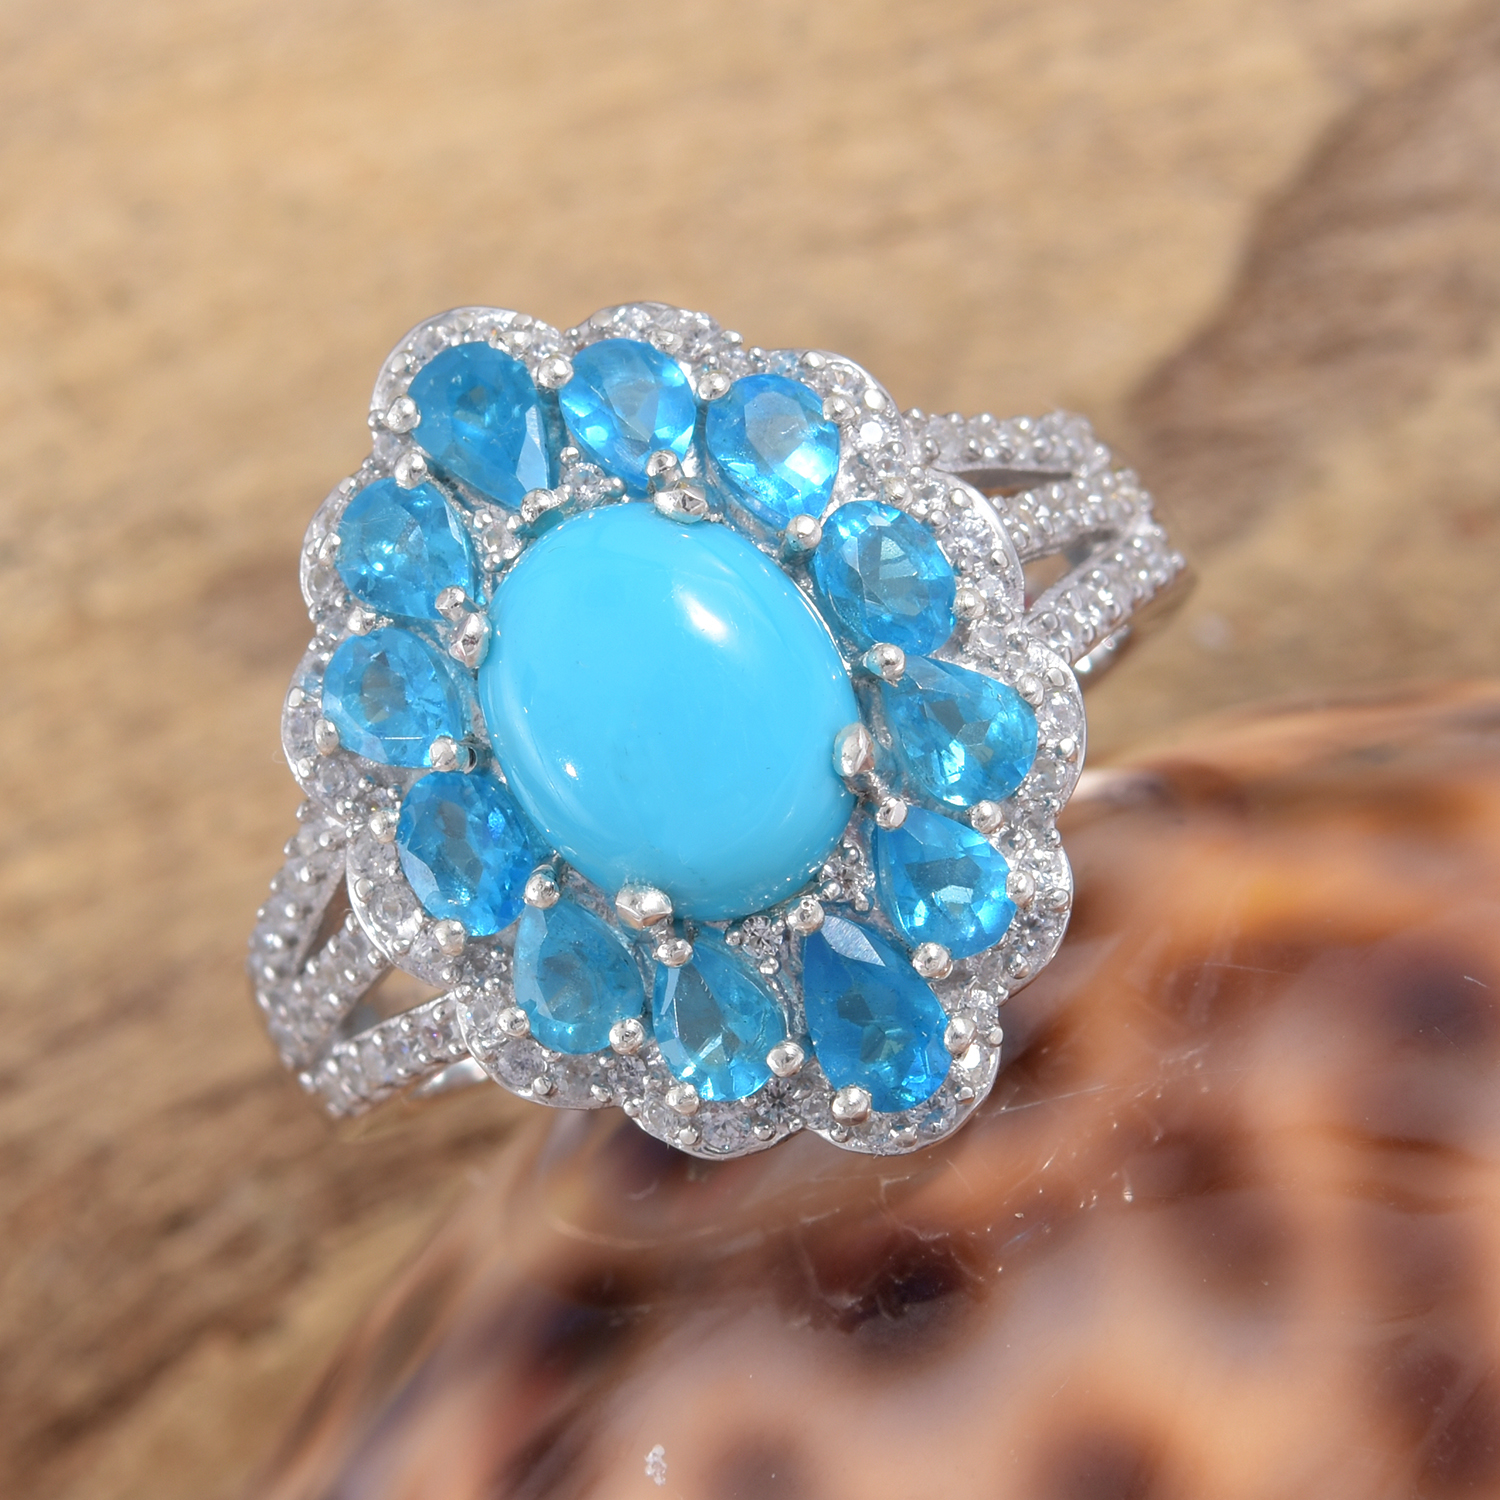 Arizona Sleeping Beauty Turquoise, Multi Gemstone Ring in Platinum Over Sterling Silver (Size 5.0) 5.35 ctw